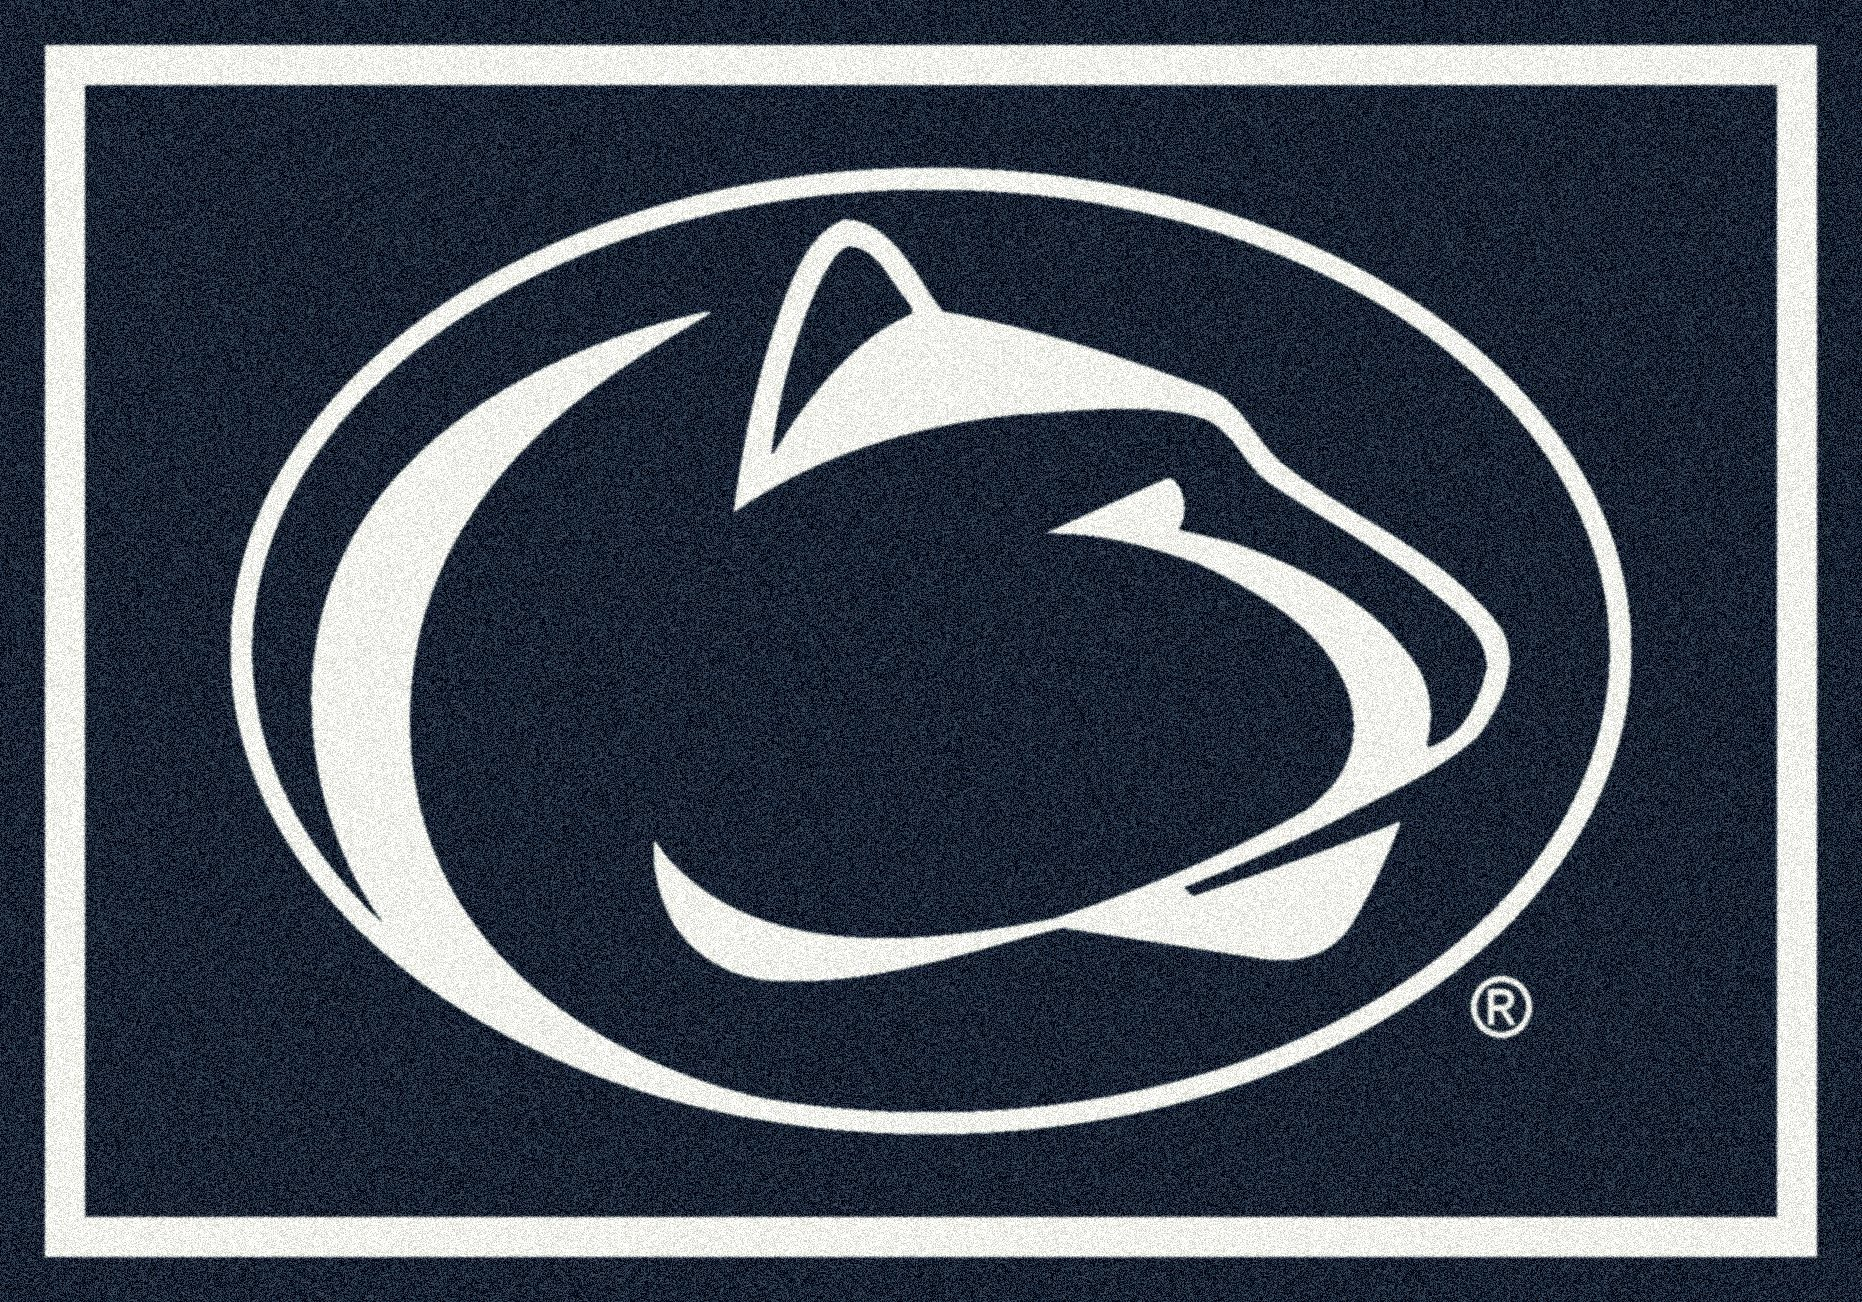 Penn State Nittany Lions NCAA College Team Spirit Team Area Rug 5'4''x7'8''